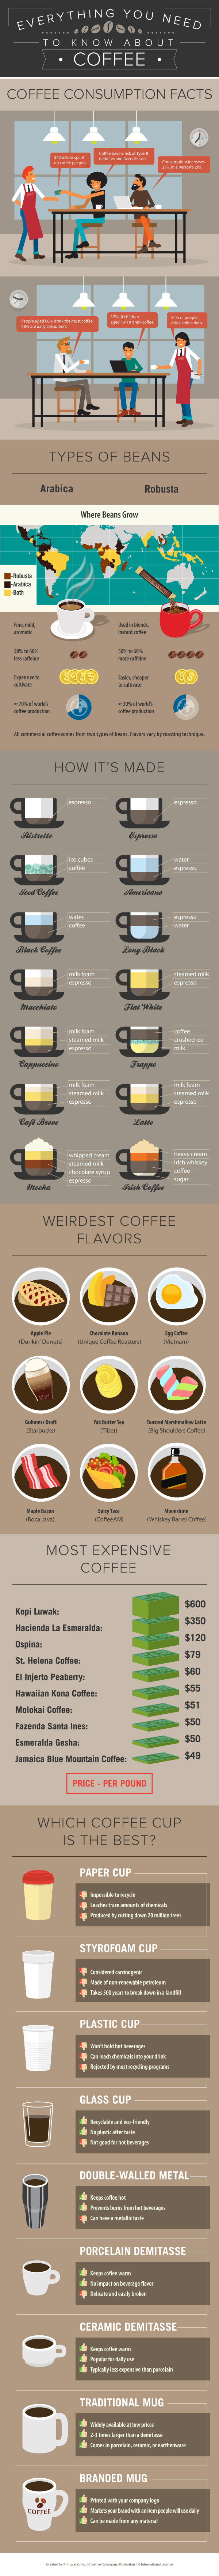 Incredible Coffee Facts You Didn't Know – Infographic